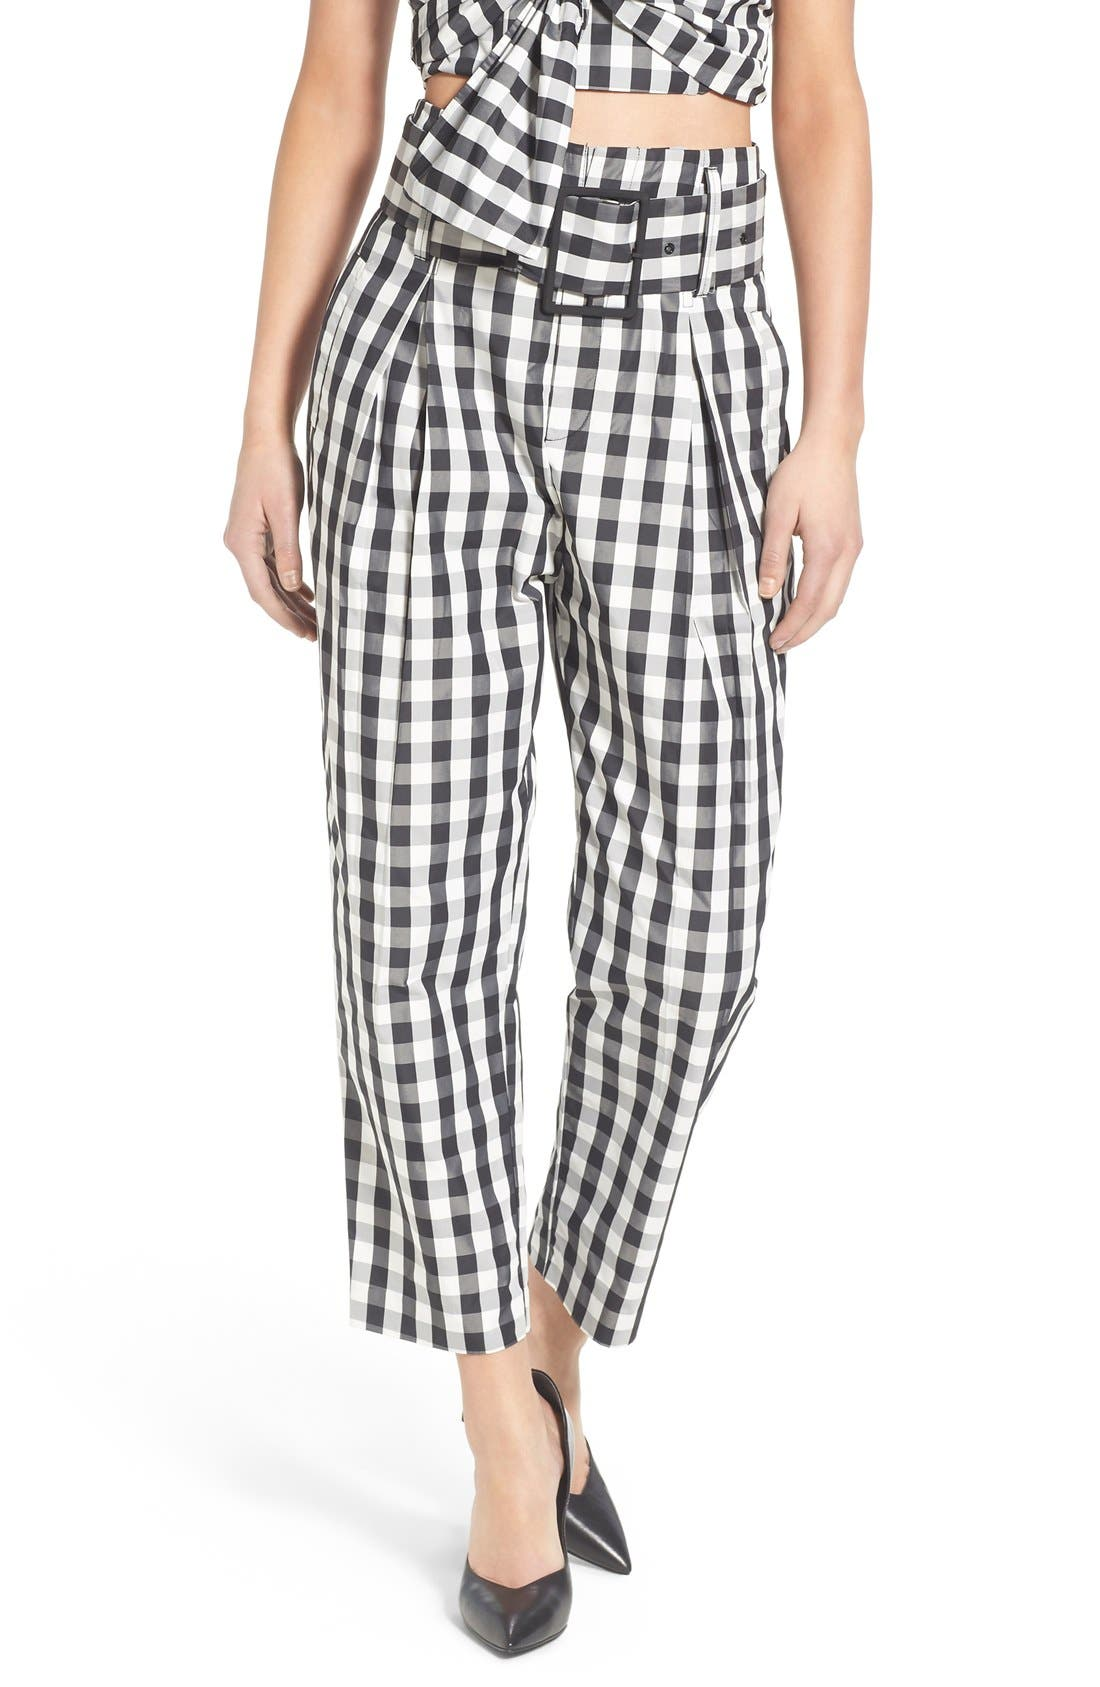 KENDALL + KYLIE, Gingham High Rise Crop Pants, Main thumbnail 1, color, 003